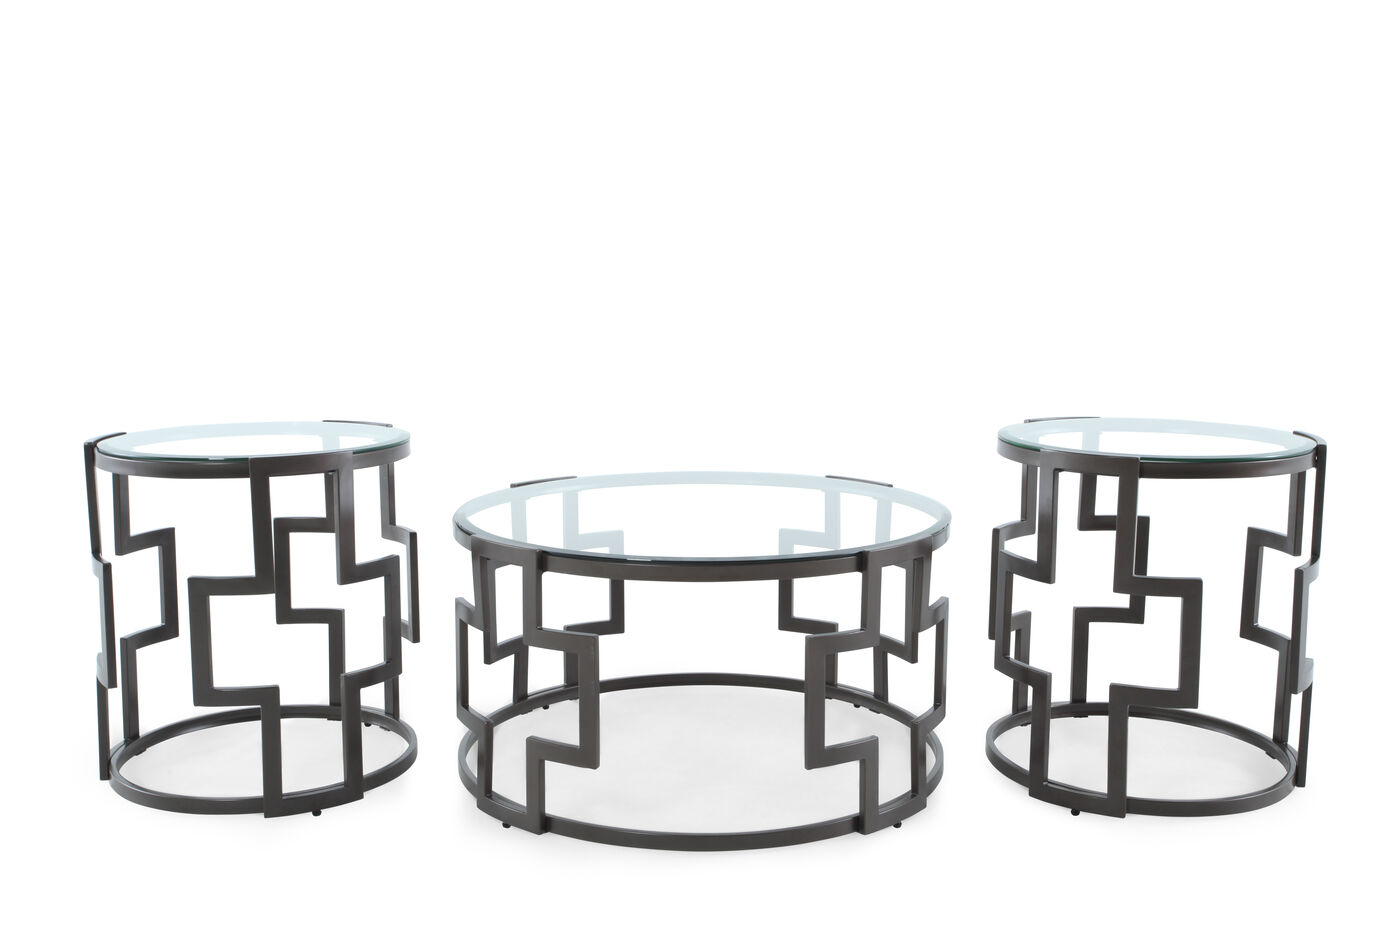 Three-Piece Round Contemporary Table Set in Grey | Mathis Brothers ...